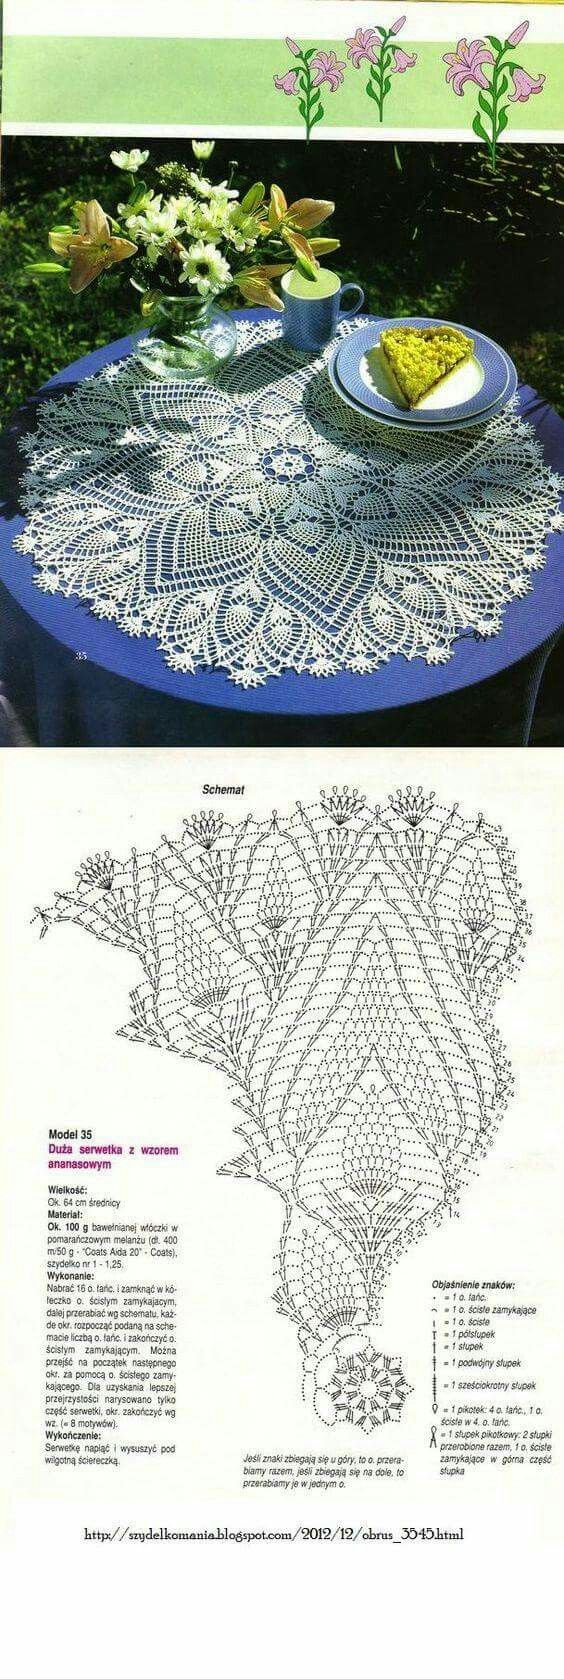 Pin By Debbie Uuro On Crazy About Crochet Pinterest Oval Doily Diagram Rosa Lace Filet Patterns Dollies Thread